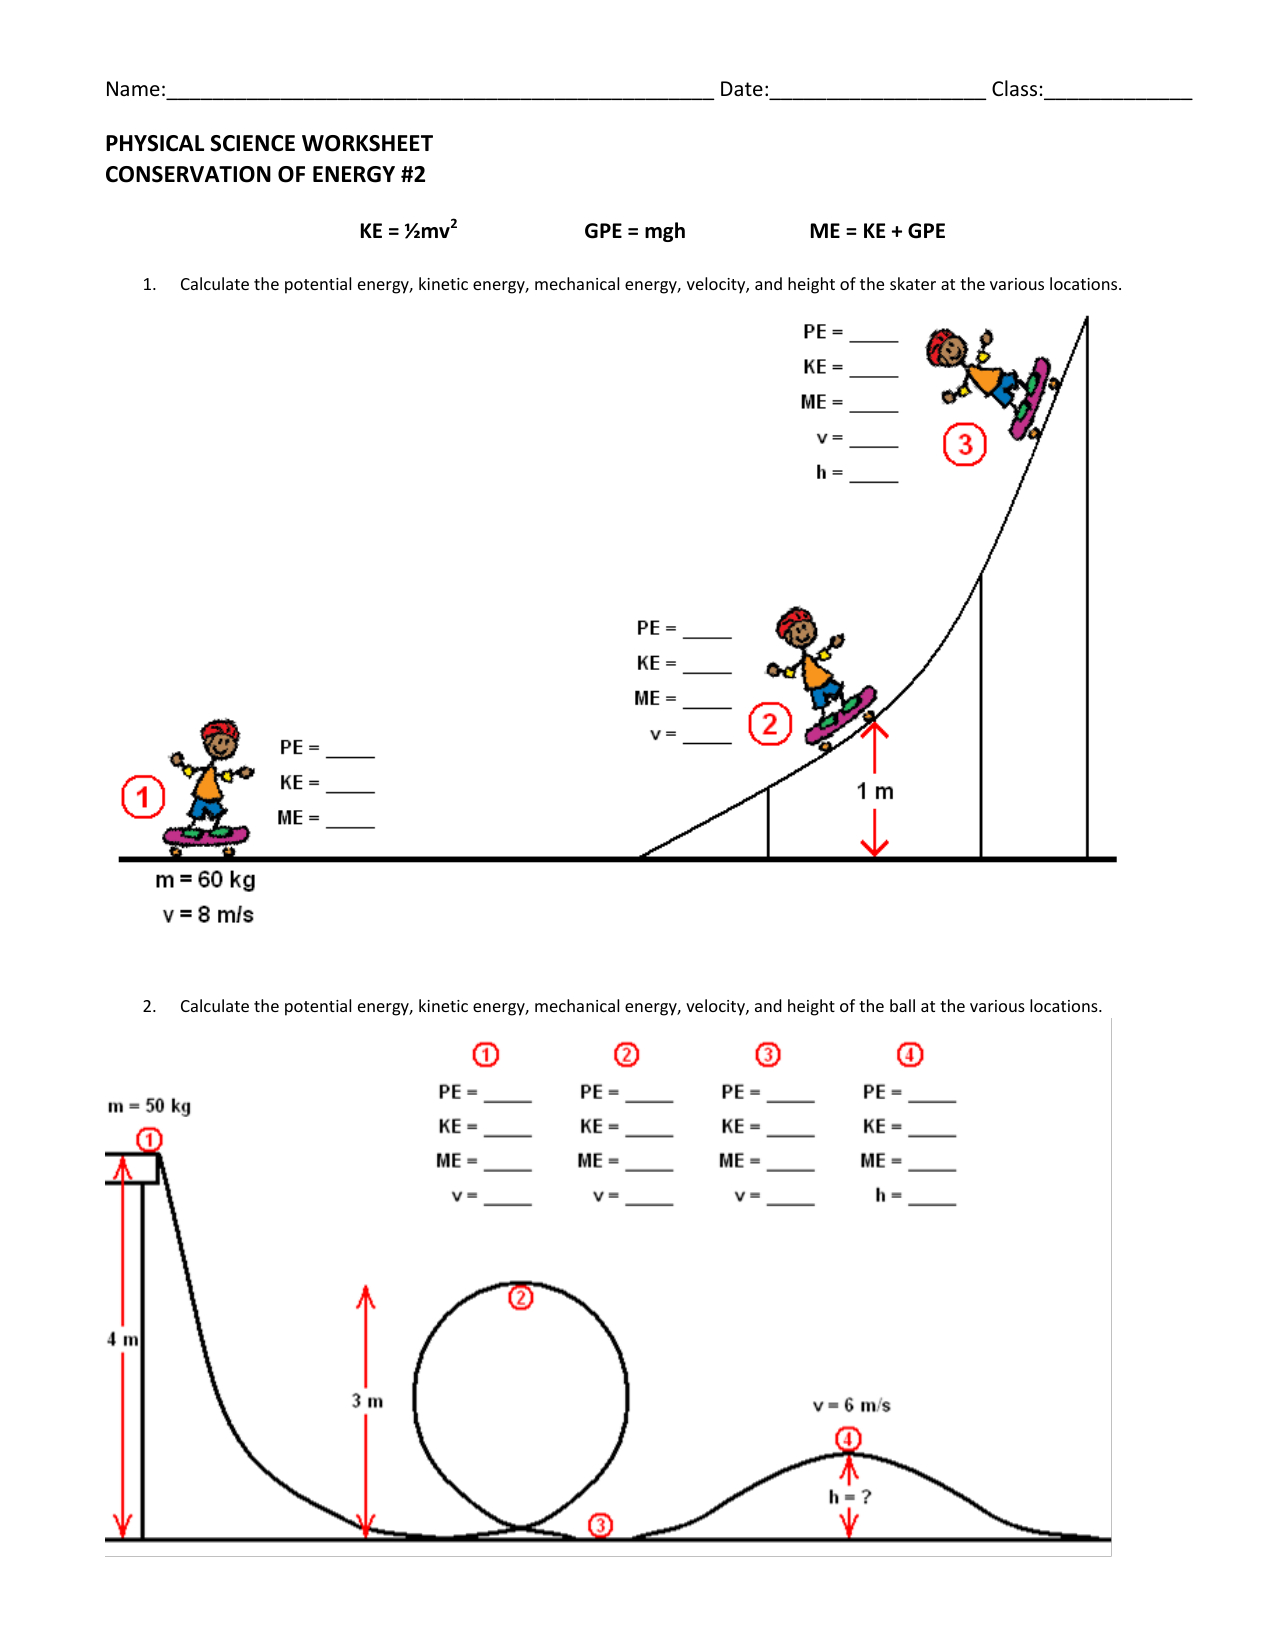 Physical Science Worksheet Conservation Of Energy 2 Answer ...